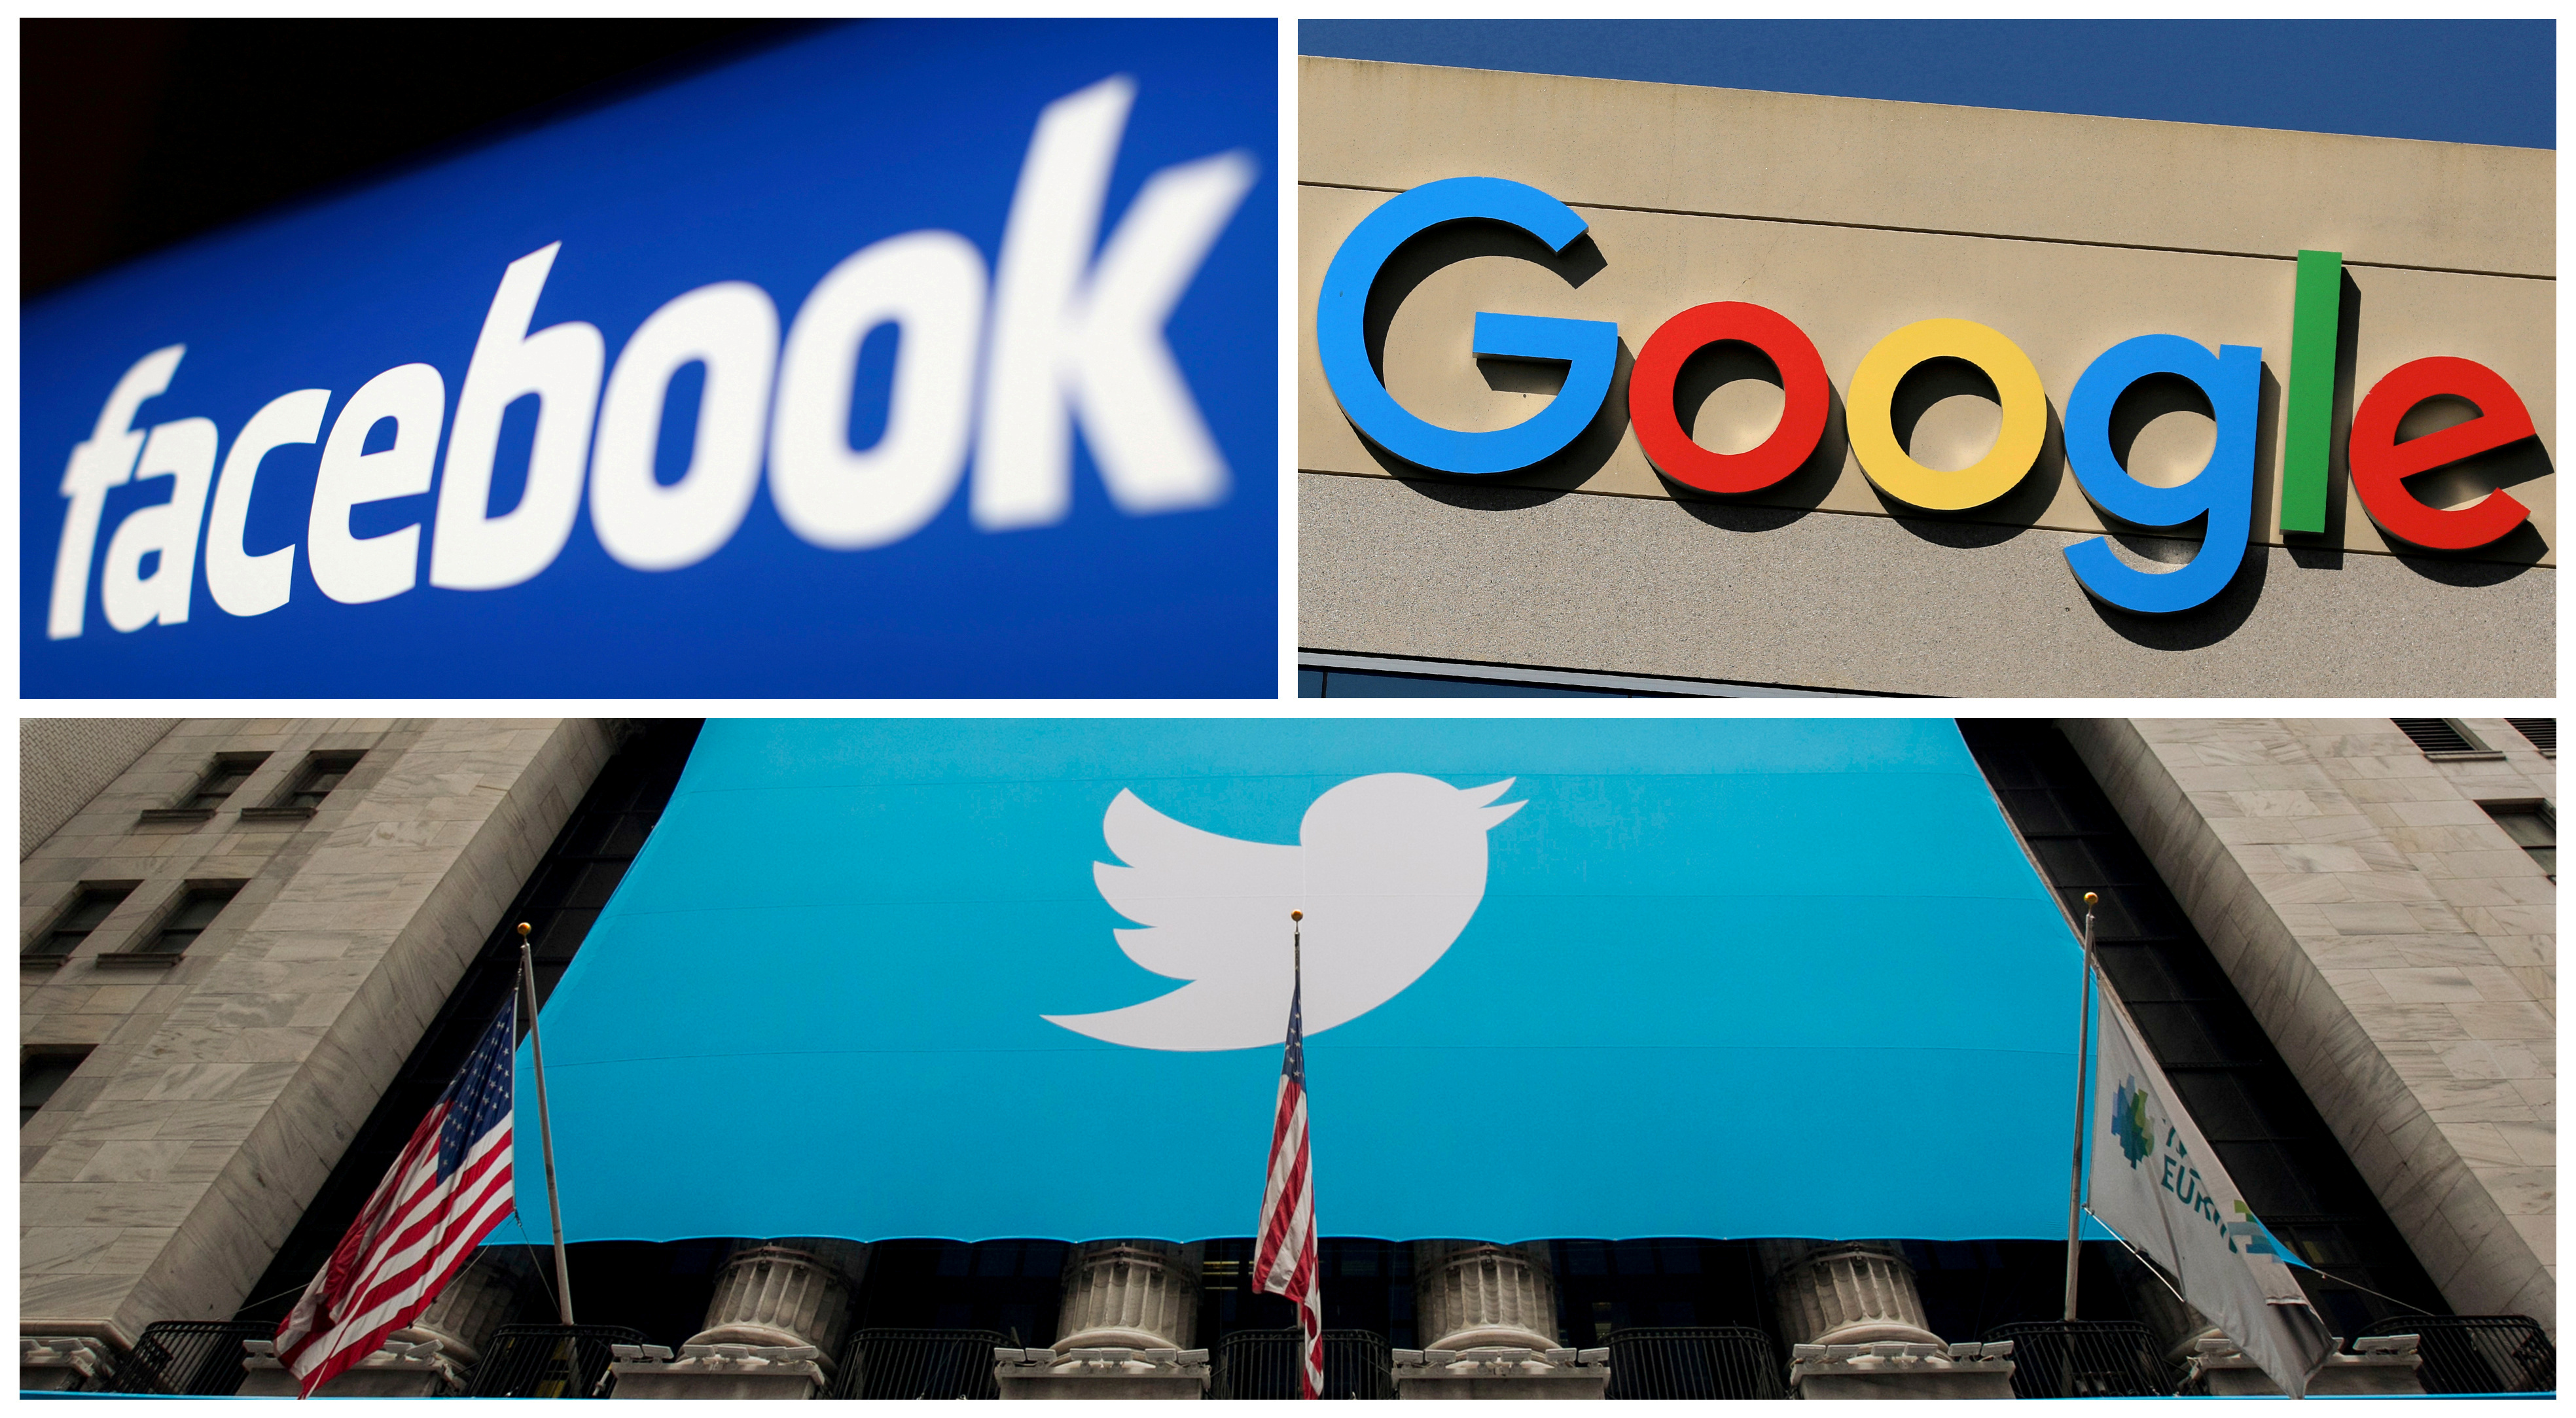 Facebook, Google and Twitter logos are seen in this combination photo from Reuters files. REUTERS/File Photos/File Photo